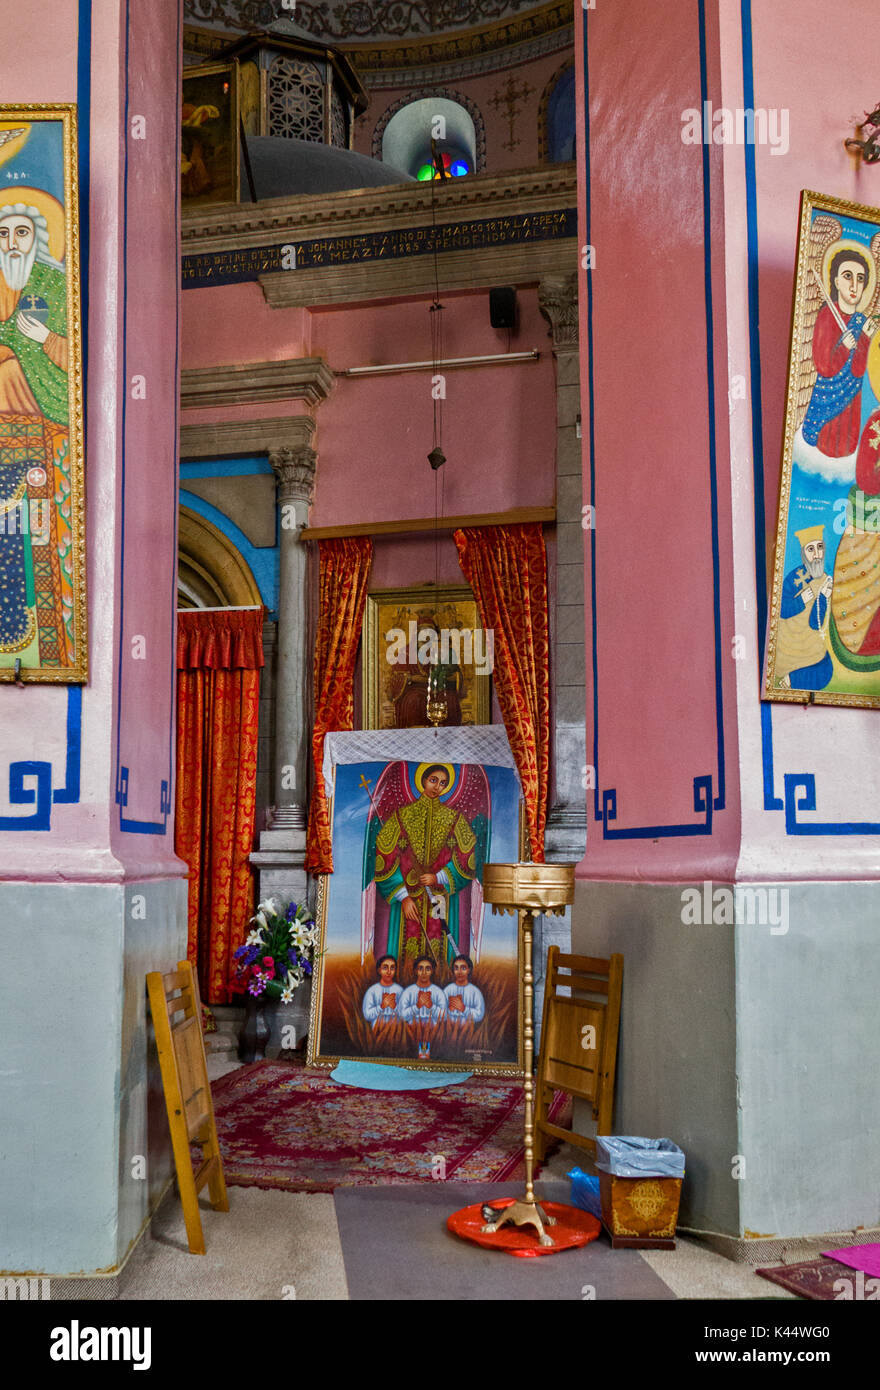 JERUSALEM, ISRAEL - July 31,2015: Interior of  The Ethiopian Church on Ethiopia Street in Jerusalem, Israel. It belongs to the Ethiopian Orthodox Tewa - Stock Image